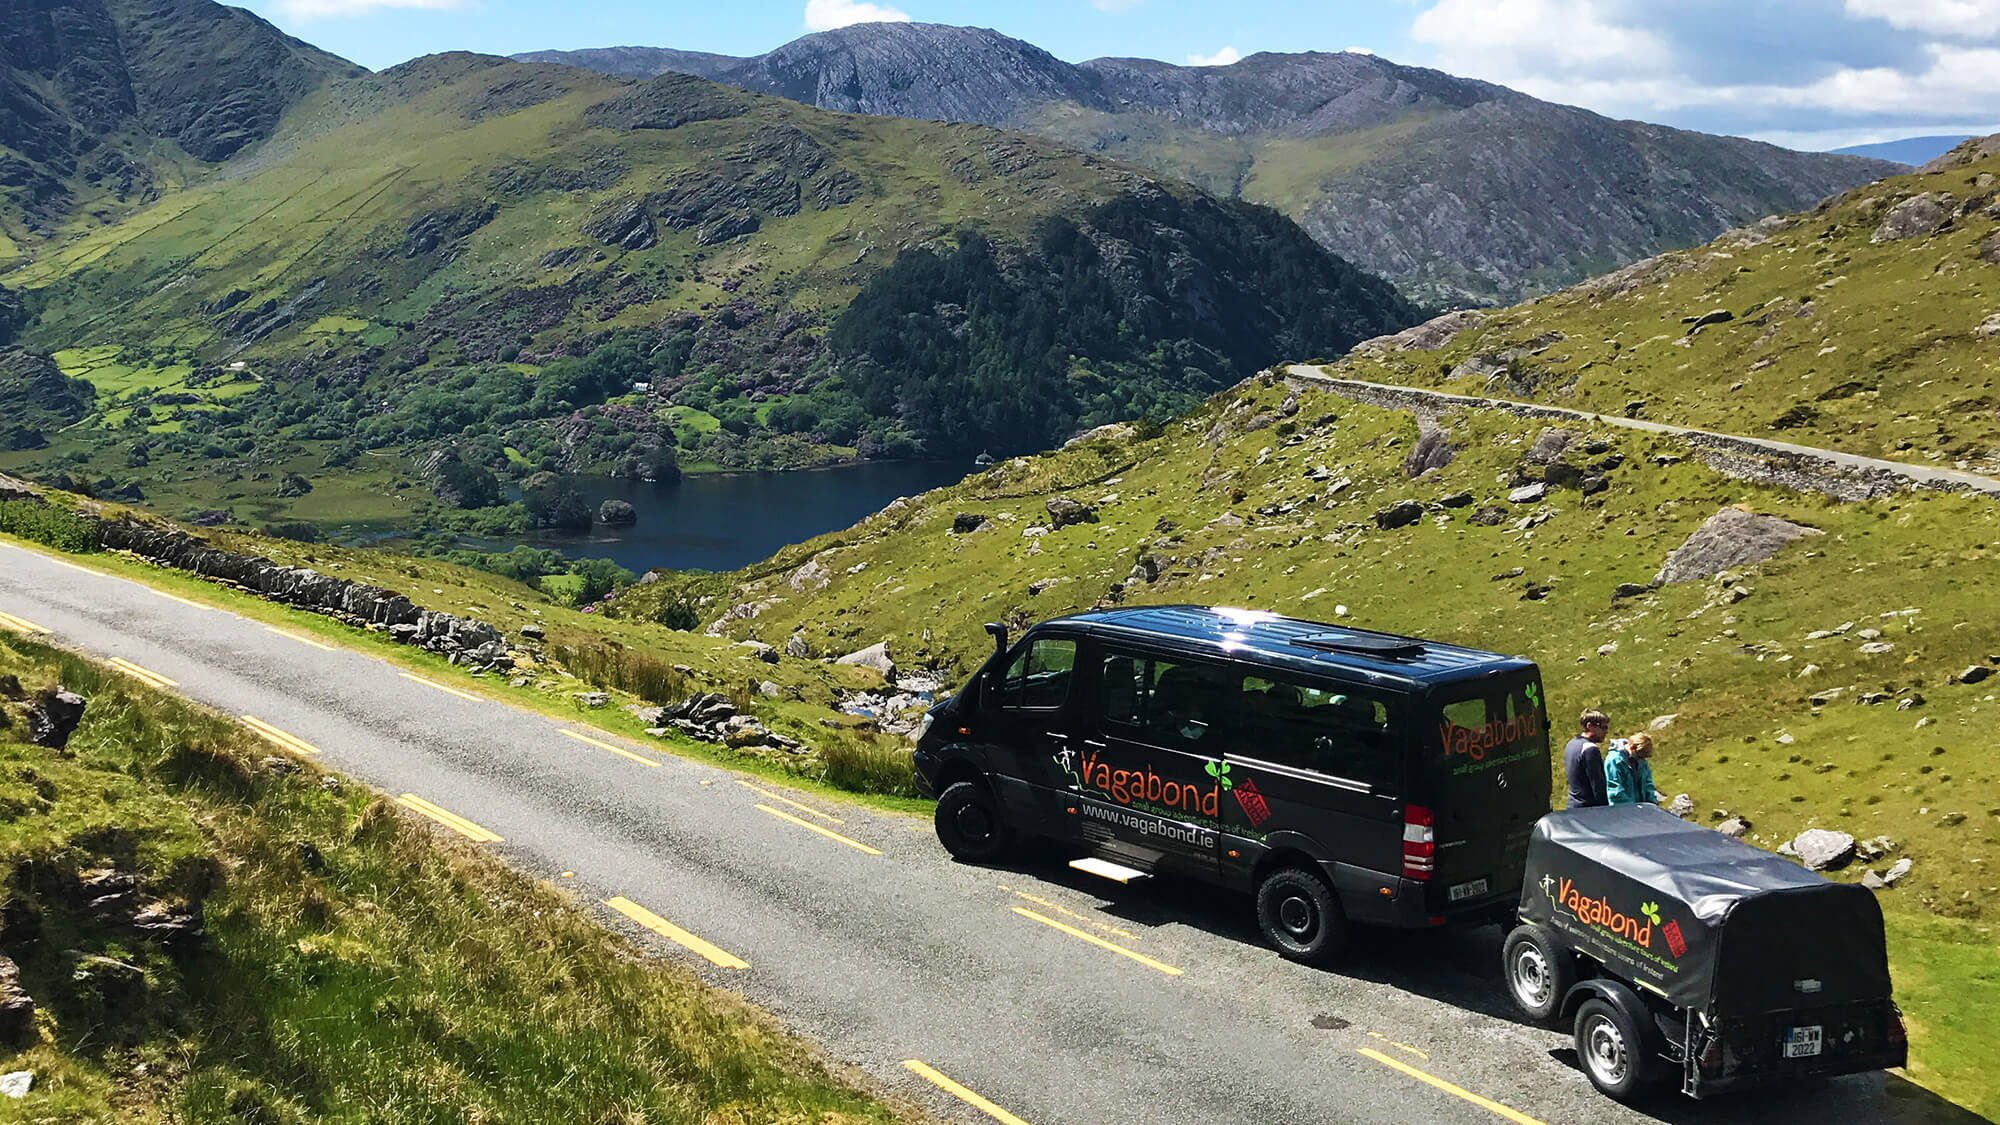 VagaTron tour vehicle on the scenic Healy Pass